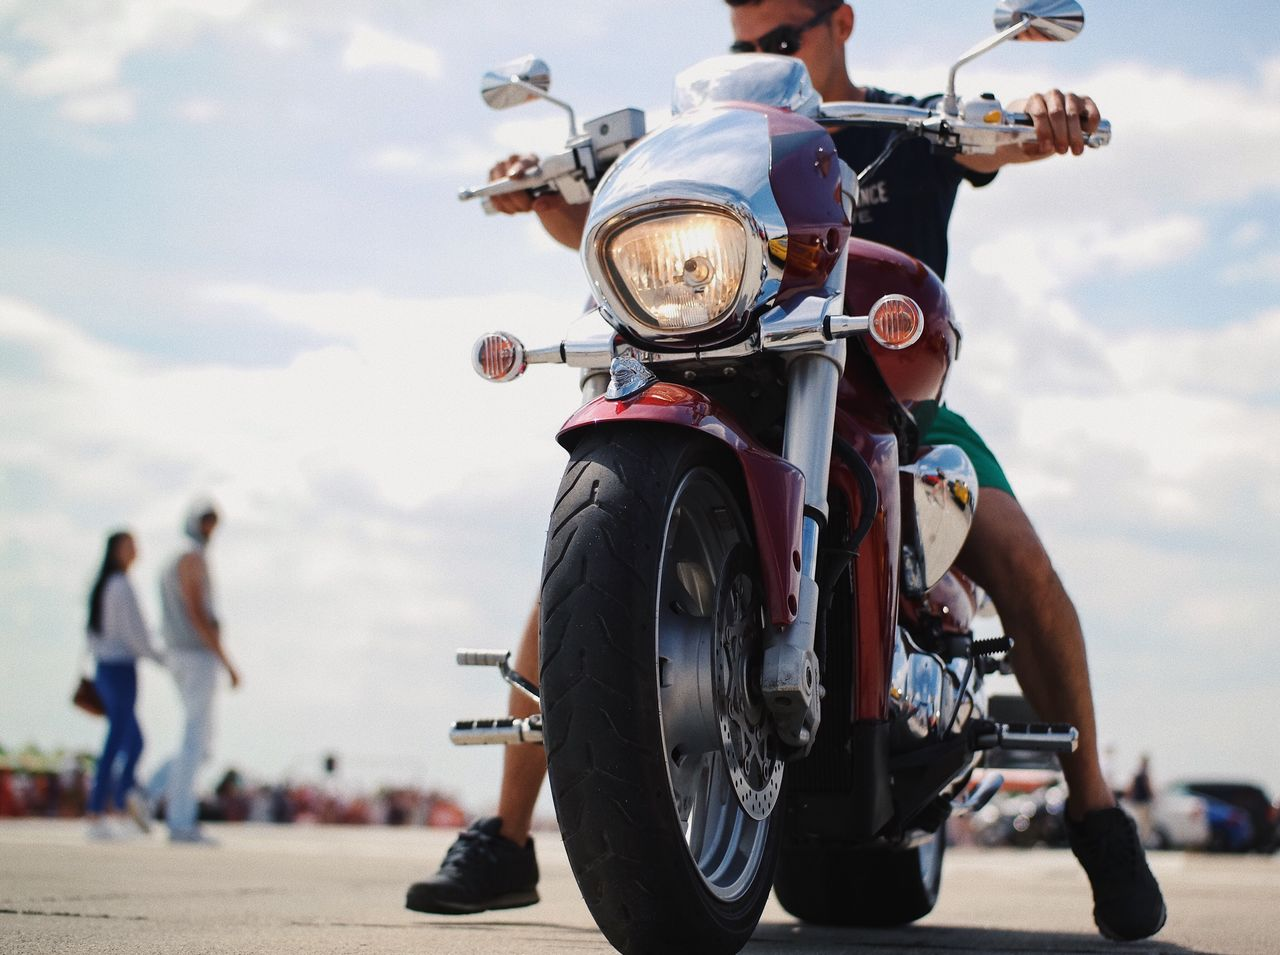 Cool ride... Sky Motorcycle Riding Mode Of Transport Outdoors Cloud - Sky Transportation Day Land Vehicle Men Road Helmet Real People Headwear One Person Adult People Ride My Favorite Photo Made In Romania Details Of My Life VSCO Summer Human Body Part Entertainment